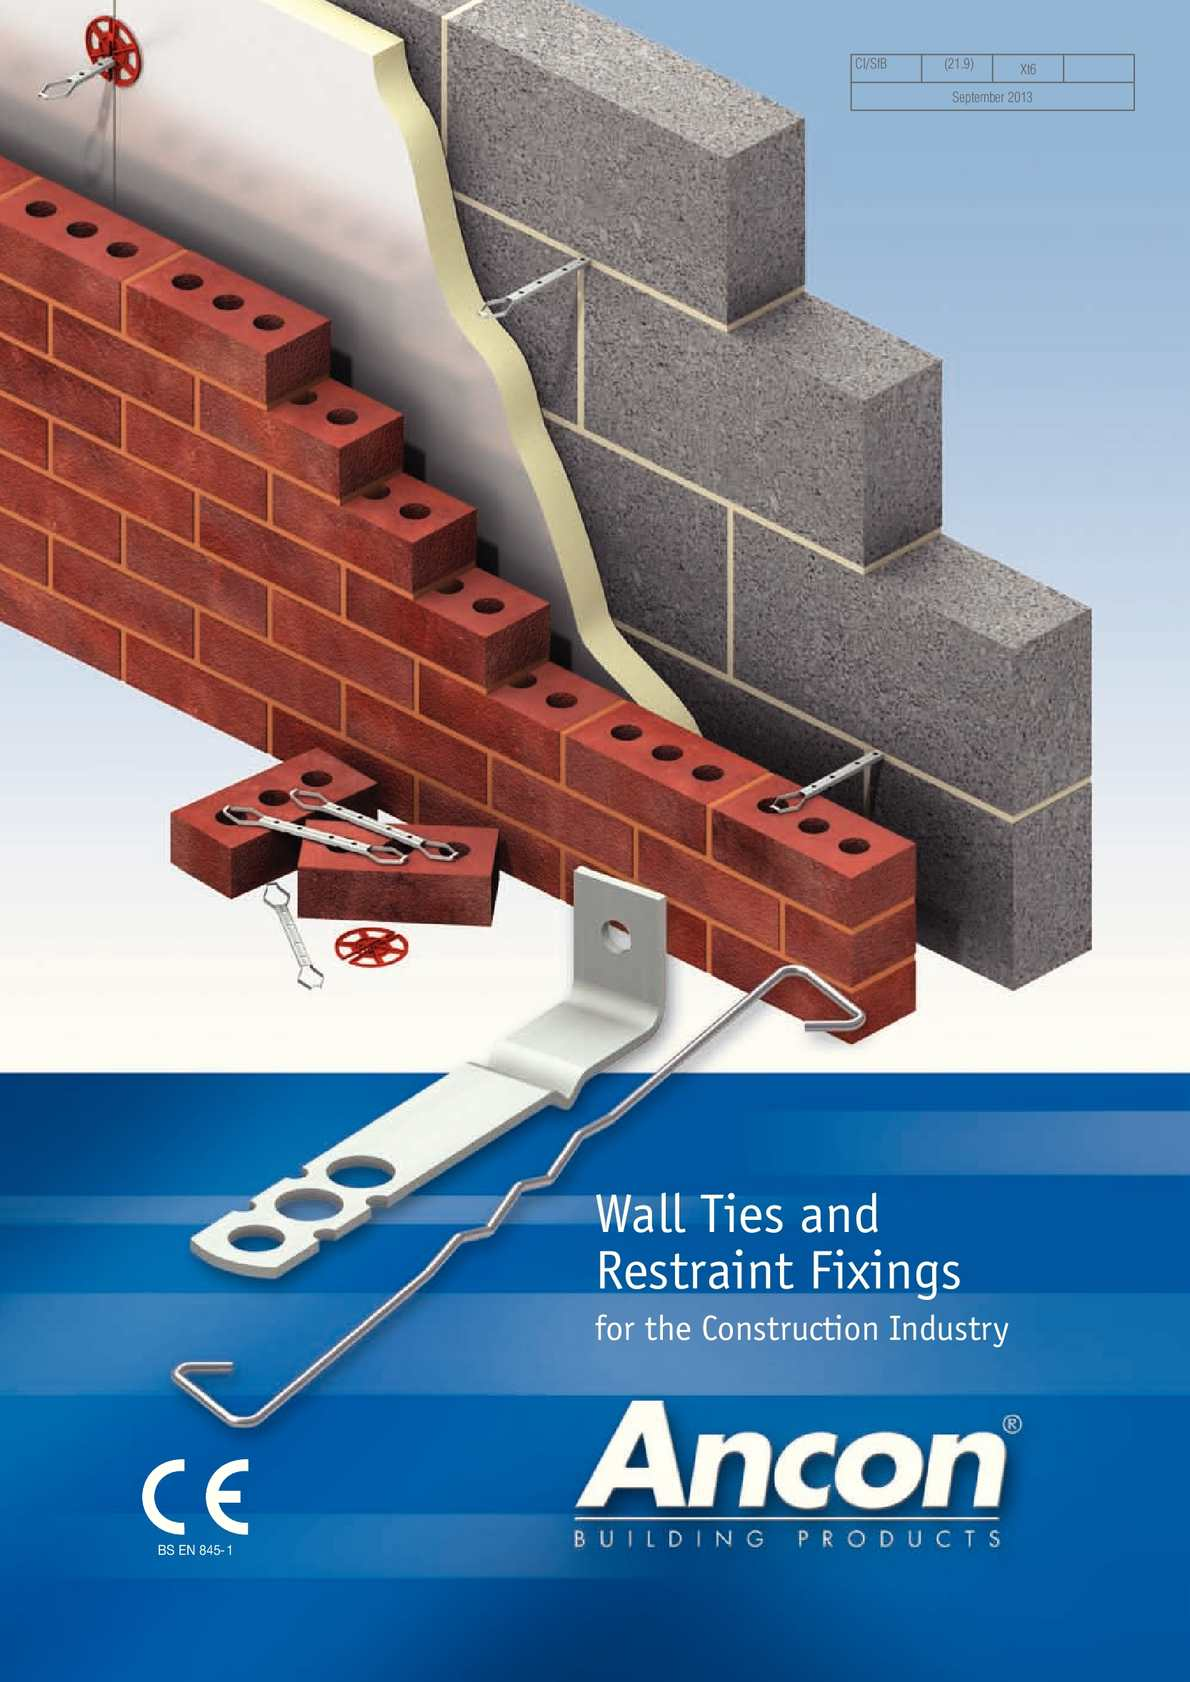 Calamo  Ancon Wall Ties and Restraint Fixings for Brick